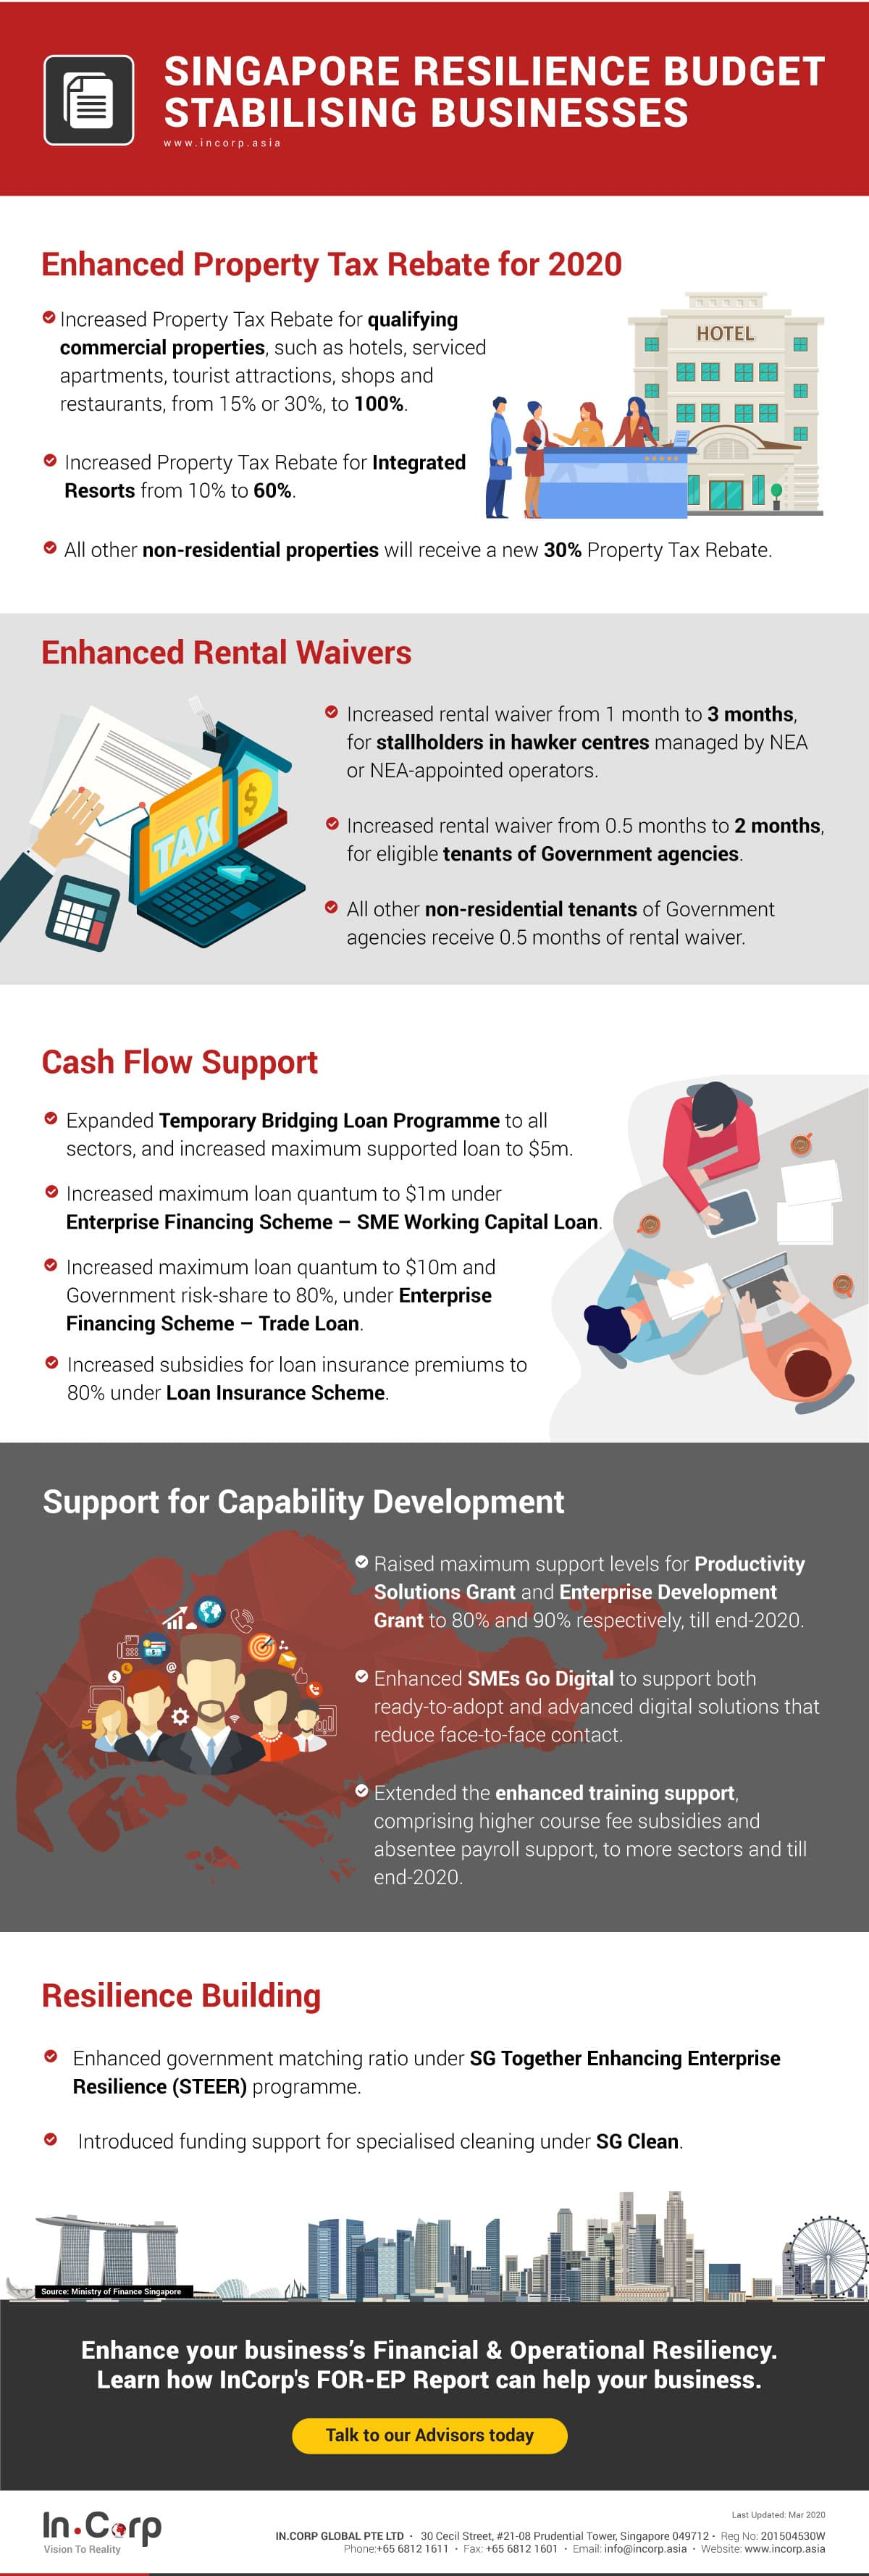 Singapore Resilience Budget Supporting businesses